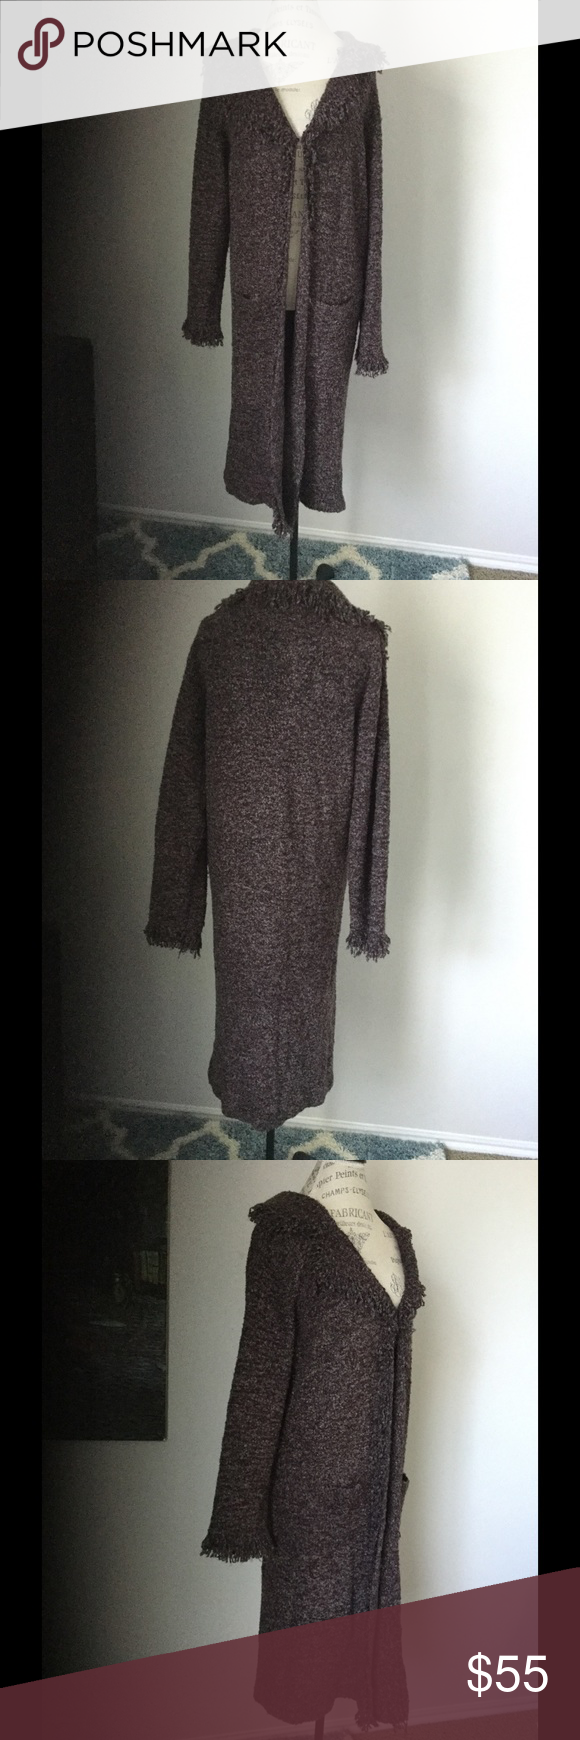 """Long brown sweater Large / XL Pit to pit 22"""" and its 43"""" long, great condition fits size L / XL Elizabeth Scott Sweaters Cardigans"""